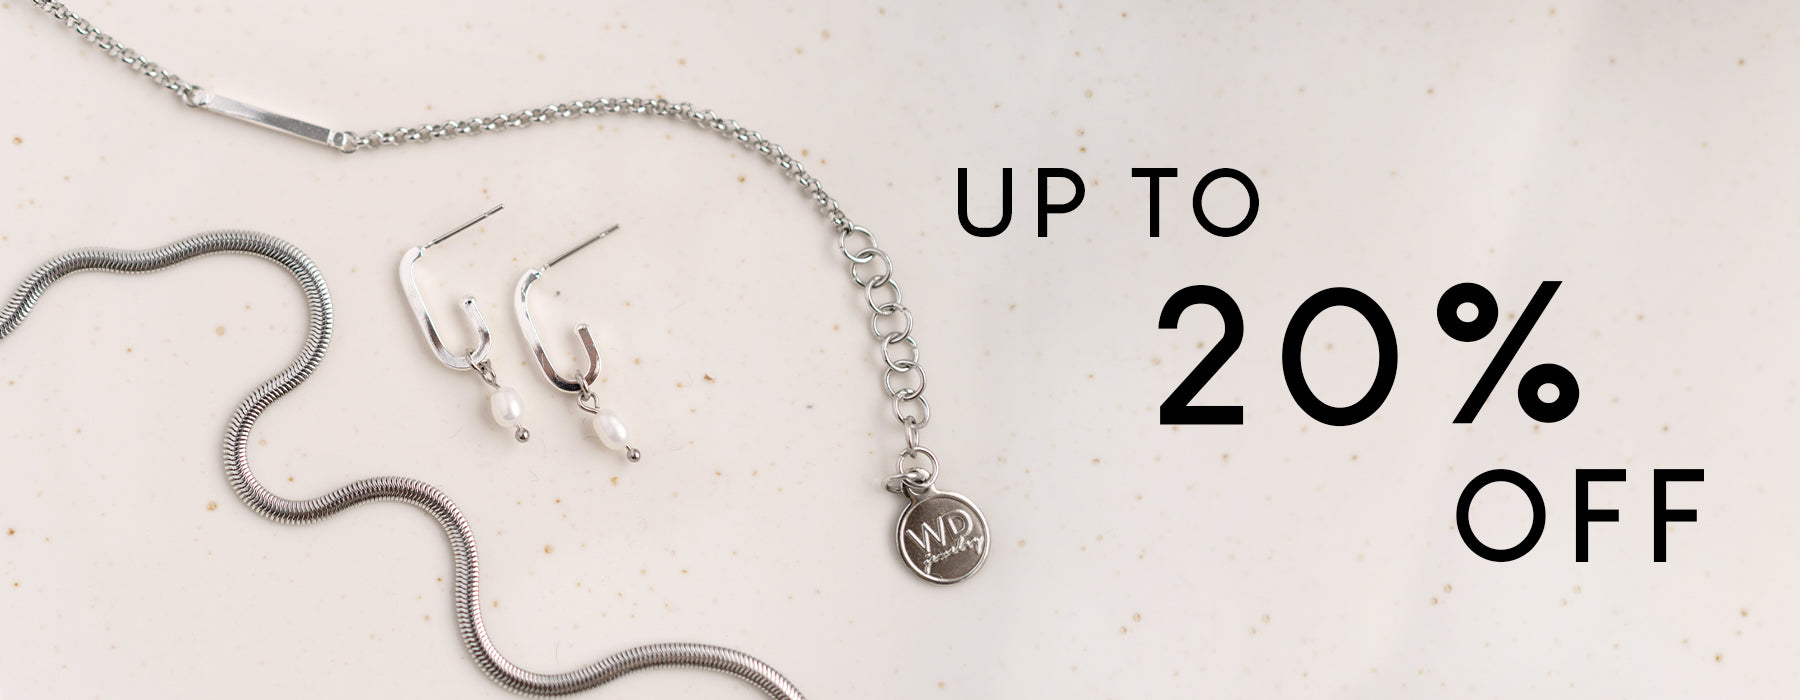 Your go-to jewelry at prices you'll love. Gold and silver wellDunn jewelry up to 20% OFF.